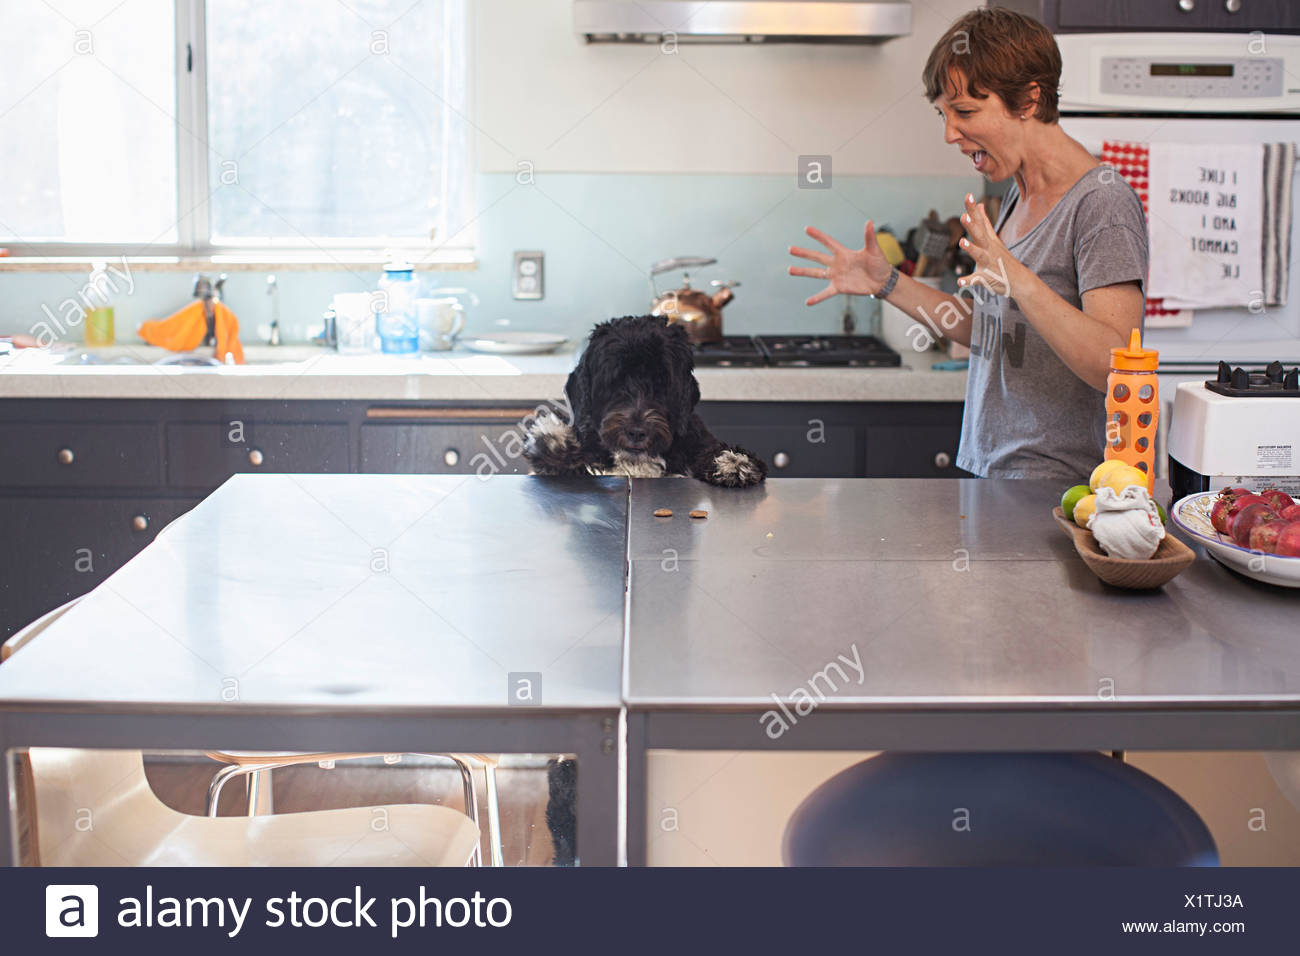 Naughty pet dog standing up at kitchen counter - Stock Image